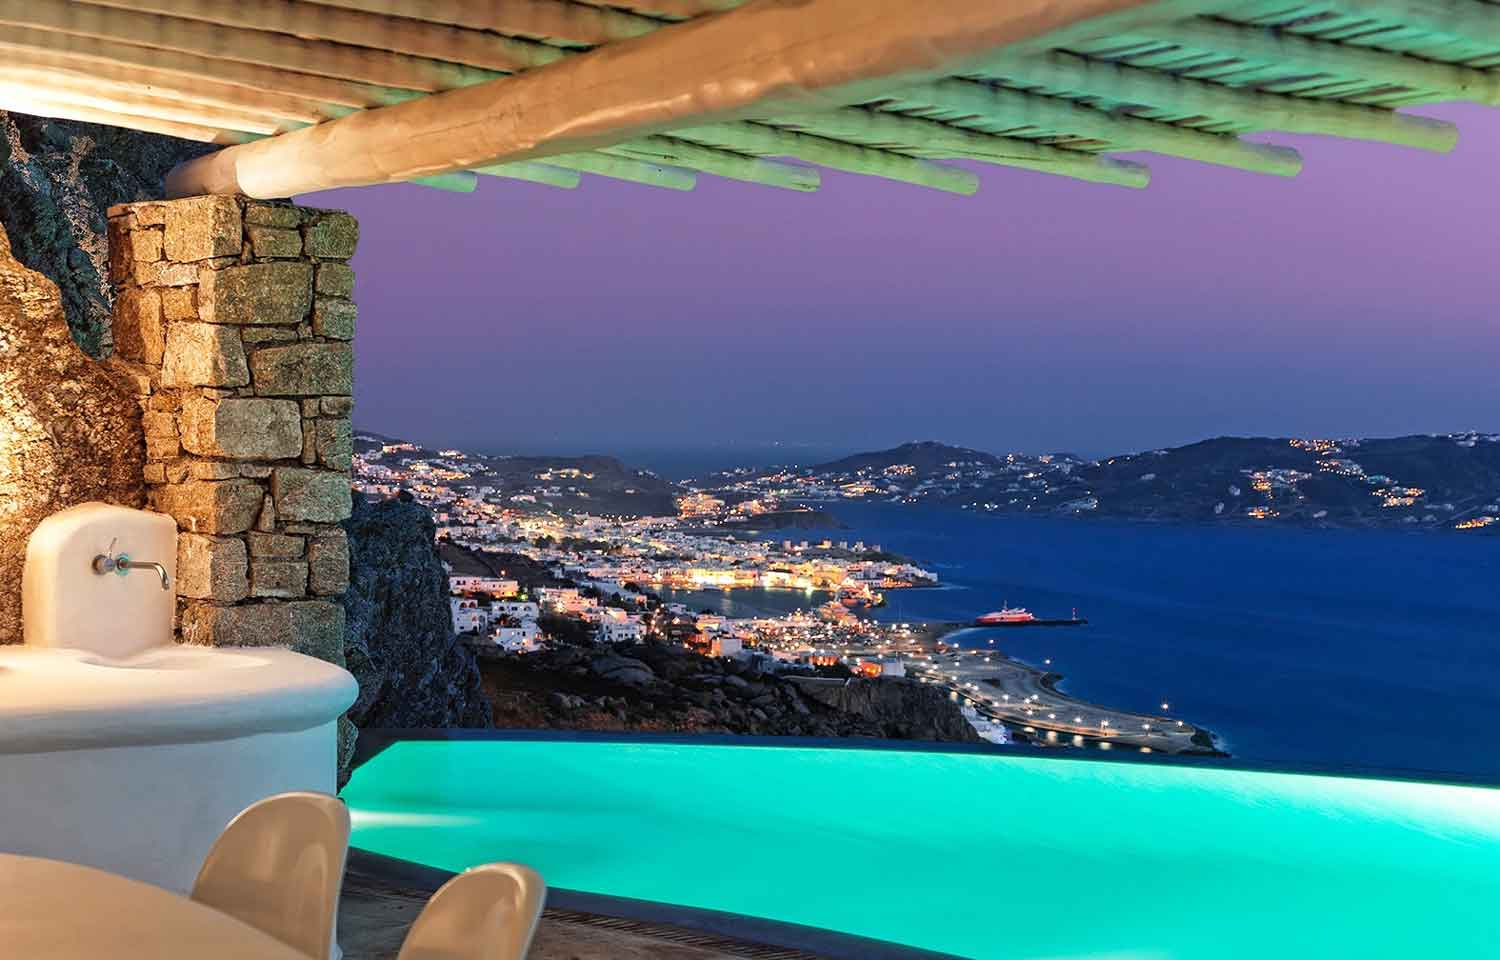 Sky Crest is a celebration of traditional and contemporary architecture; its enchanting name derives from the legendary views of the Aegean Sea and the sacred island of Delos.